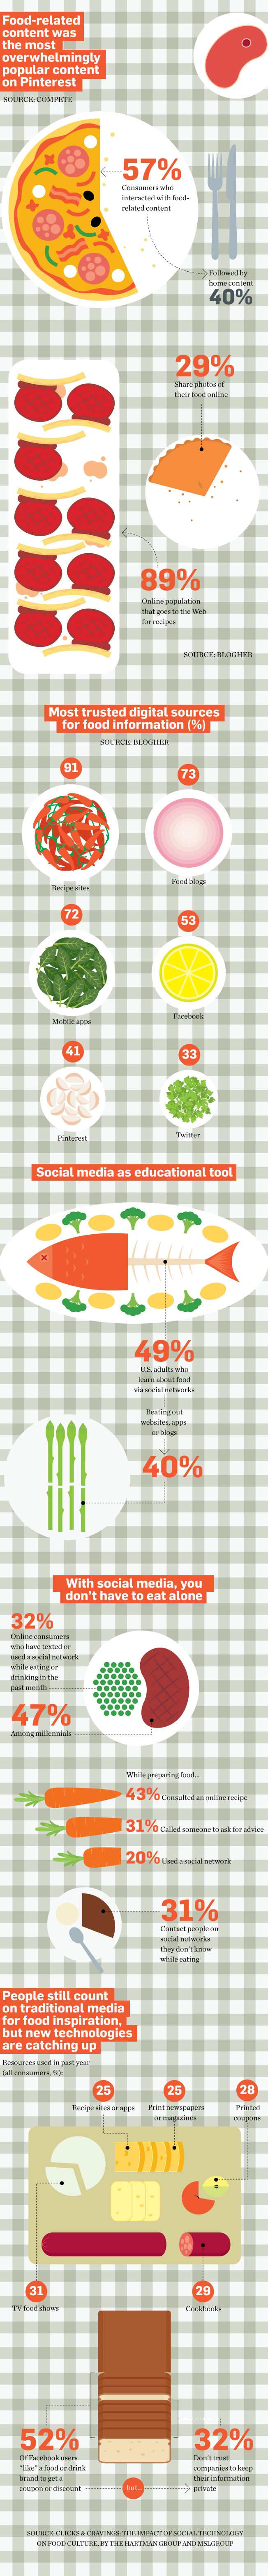 Thanks To Twitter, Facebook and Instagram We'll Never Have Eat Alone | Adweek